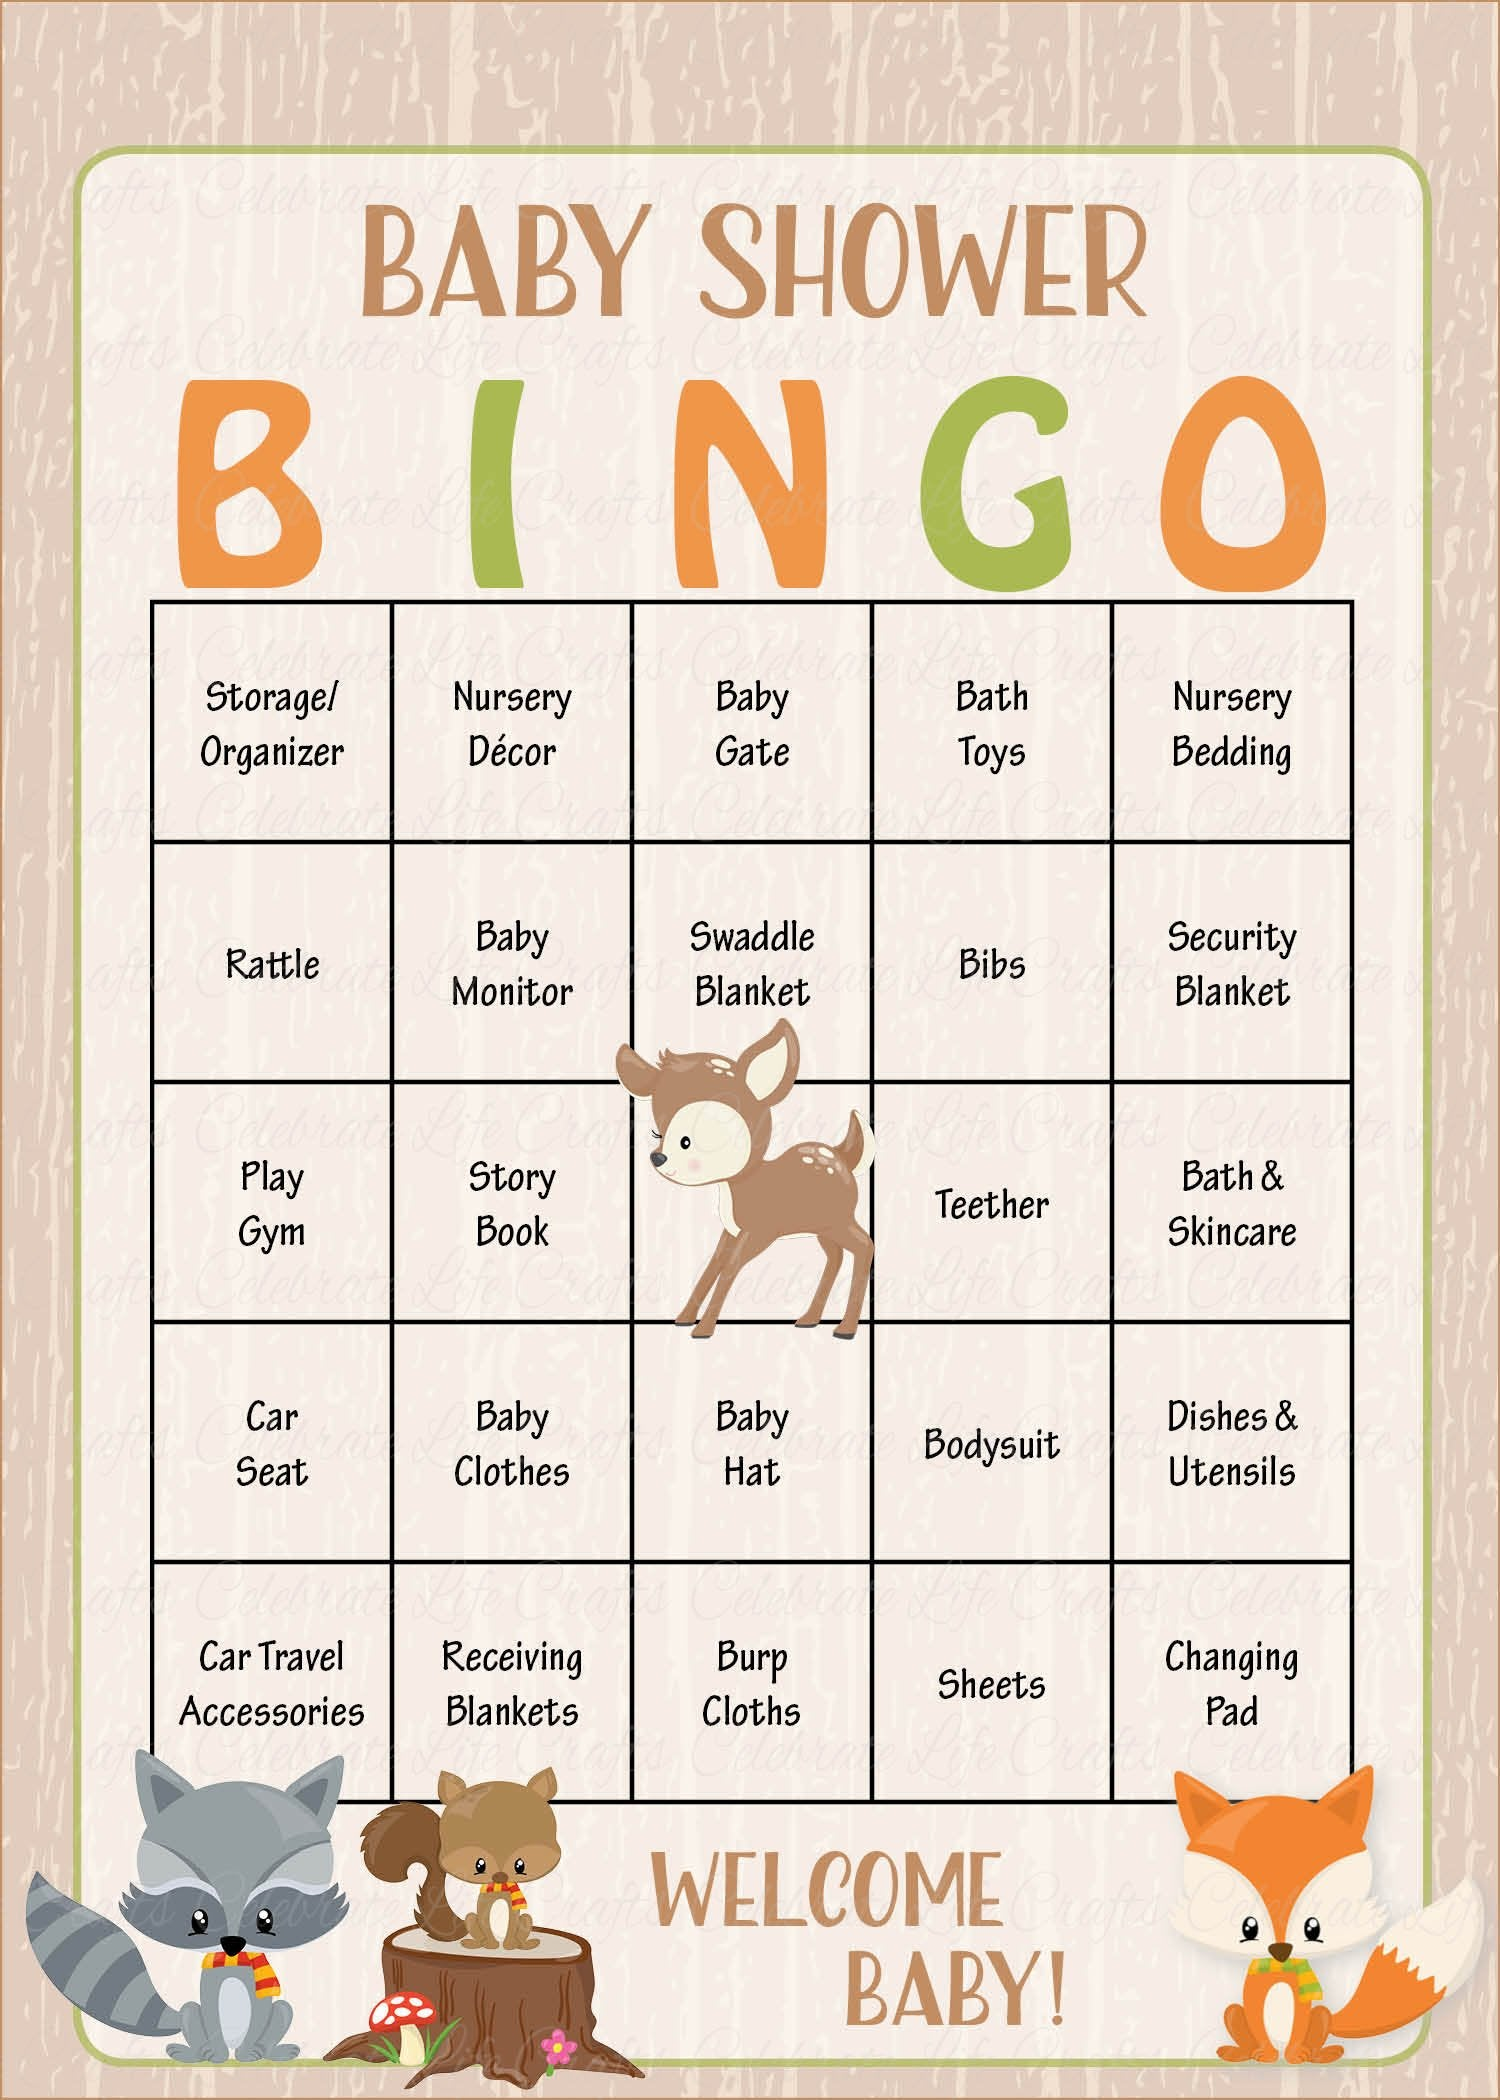 Woodland Baby Bingo Cards   PRINTABLE DOWNLOAD   Prefilled   Baby Shower  Game   Forest Animals   B18002.